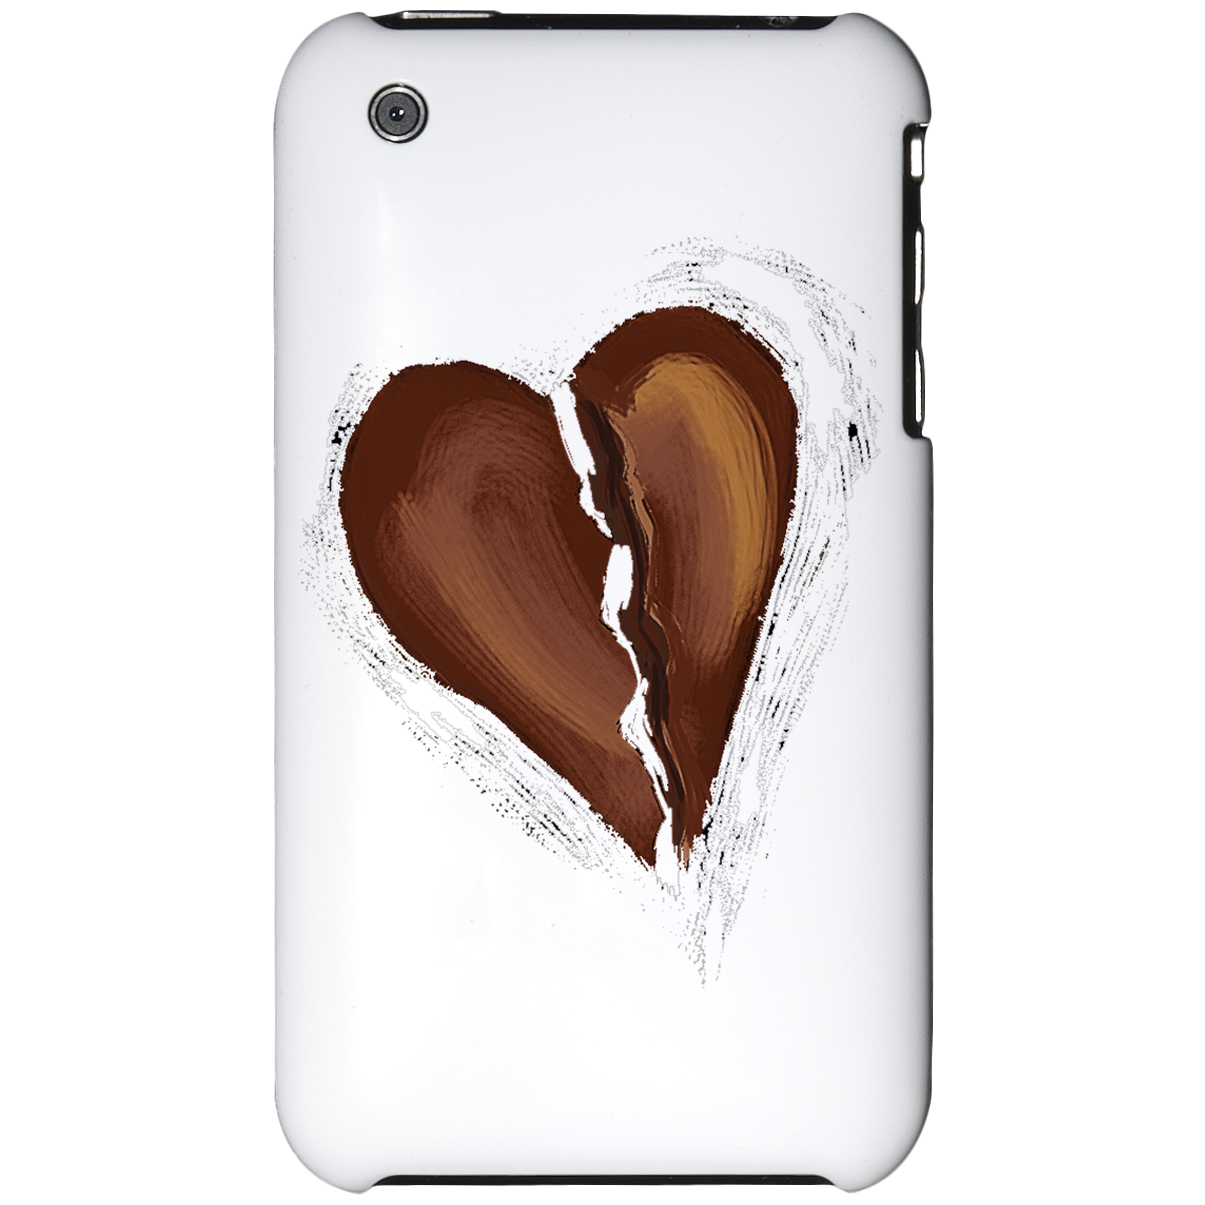 Does Verizon Insurance Cover Cracked Iphone Screen